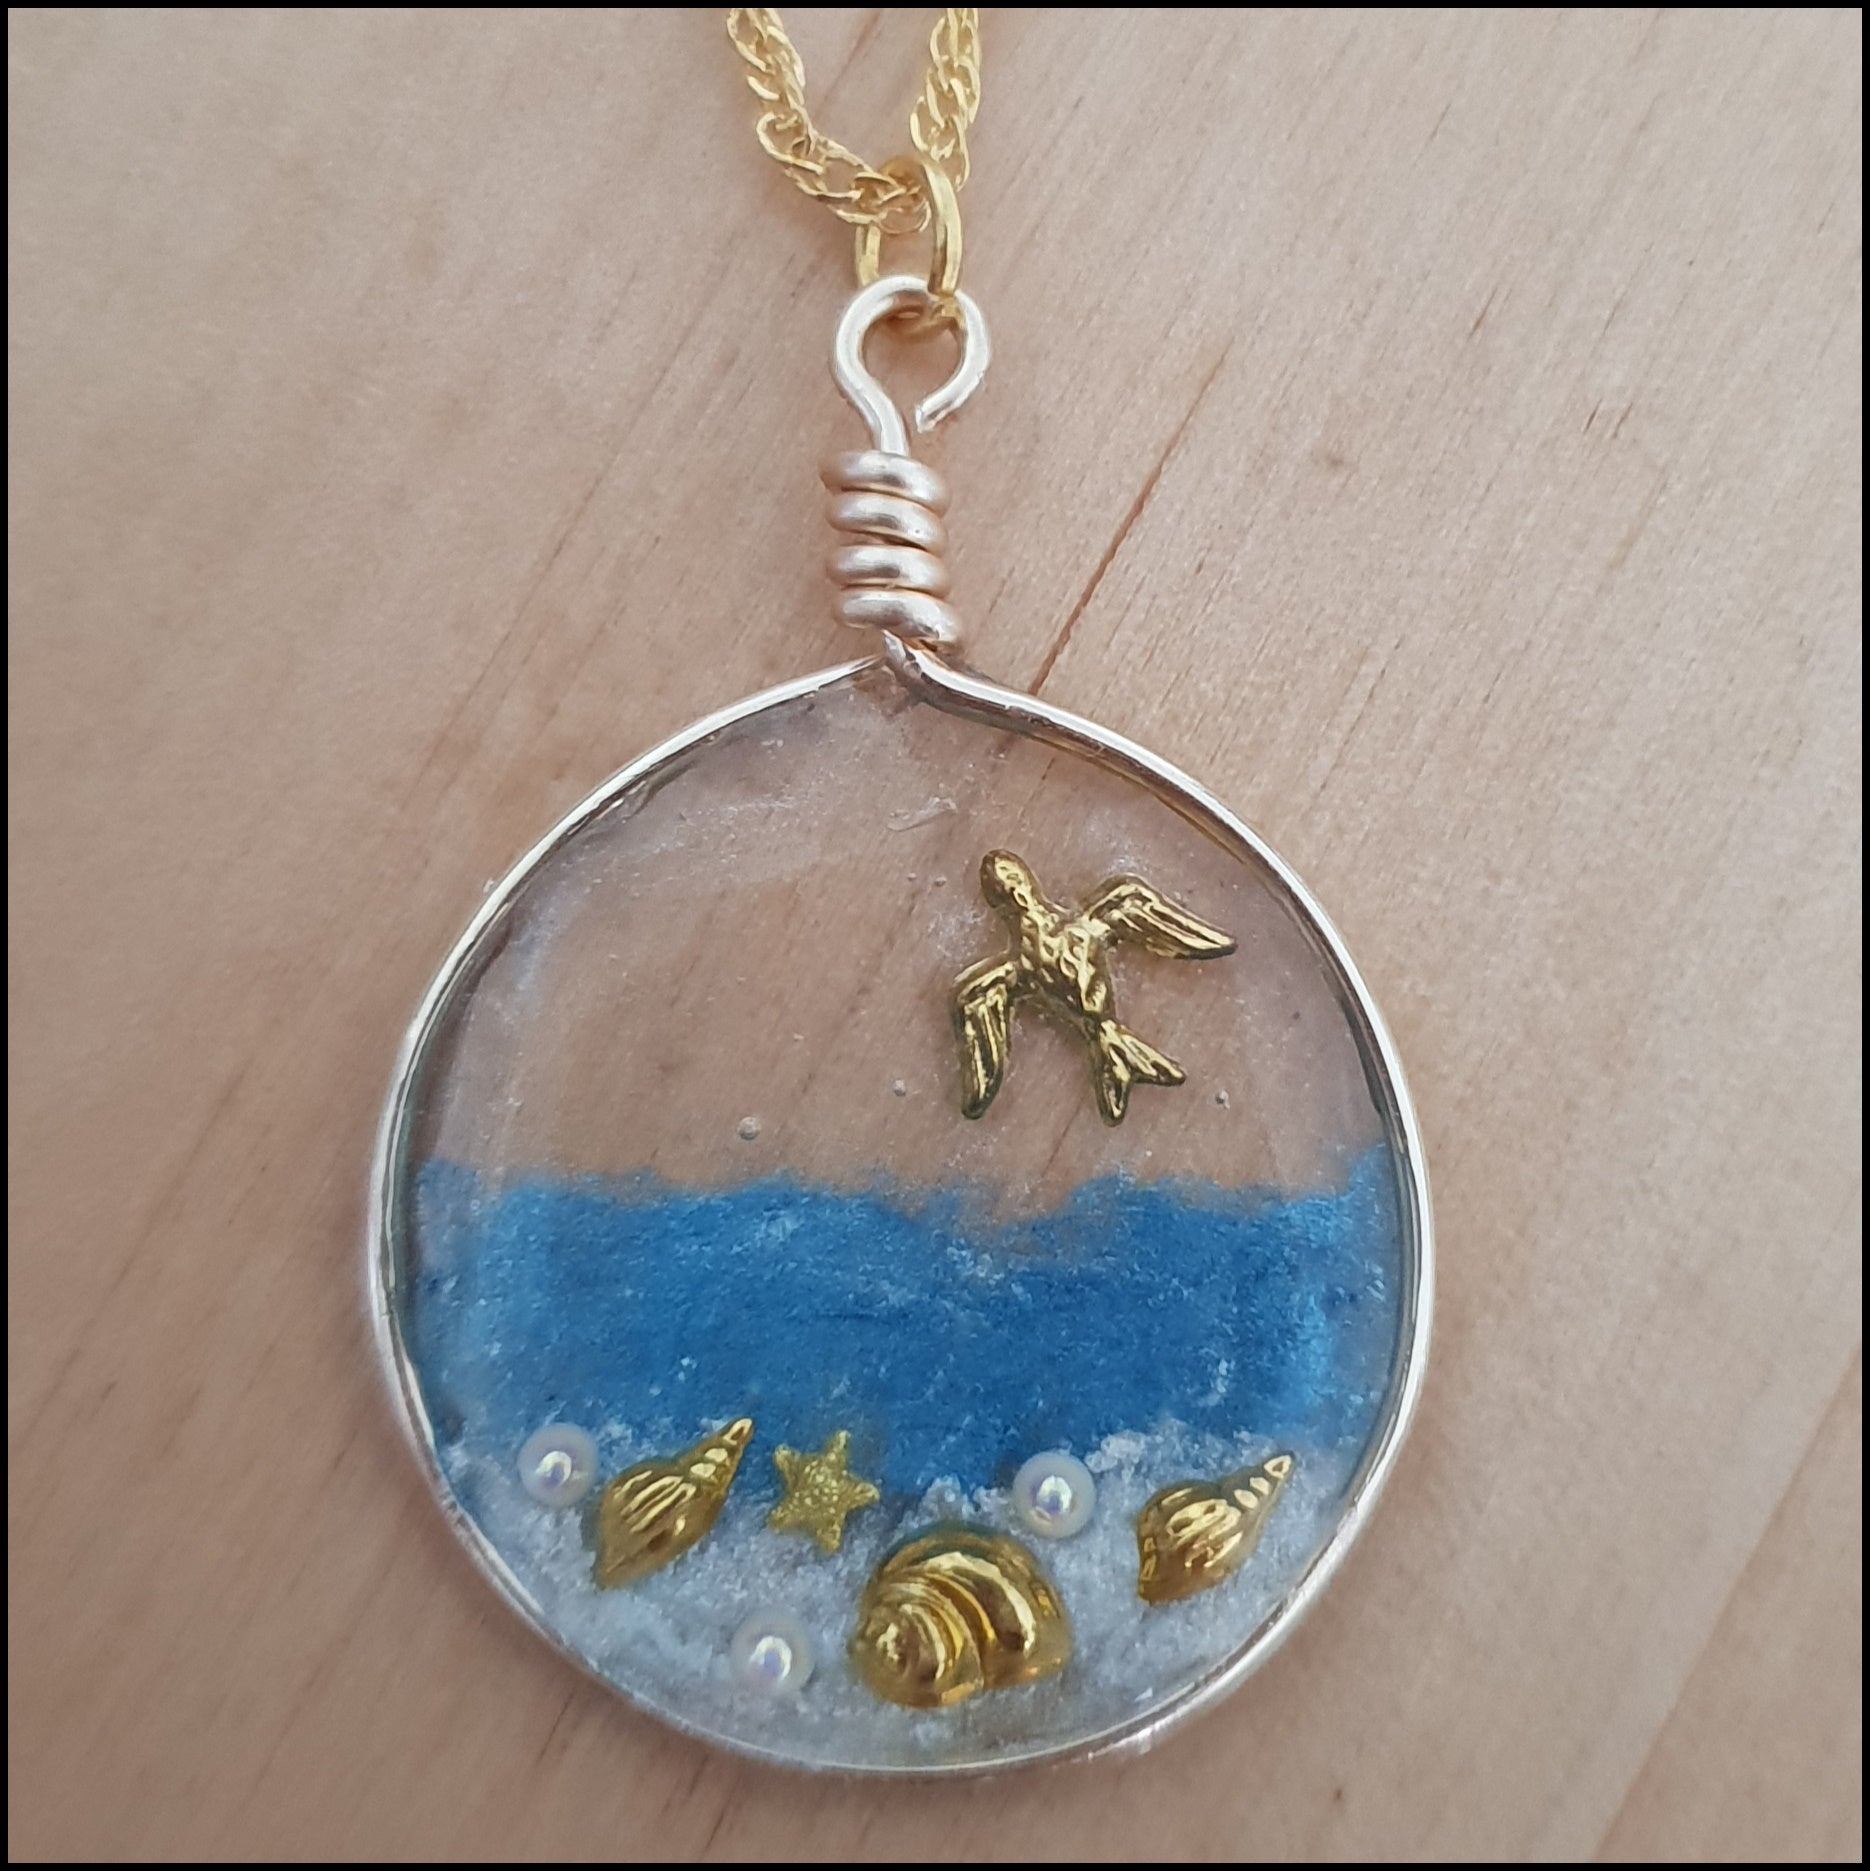 Handmade Layered Resin & Wire Pendant - Gold Beach Scene in Circle